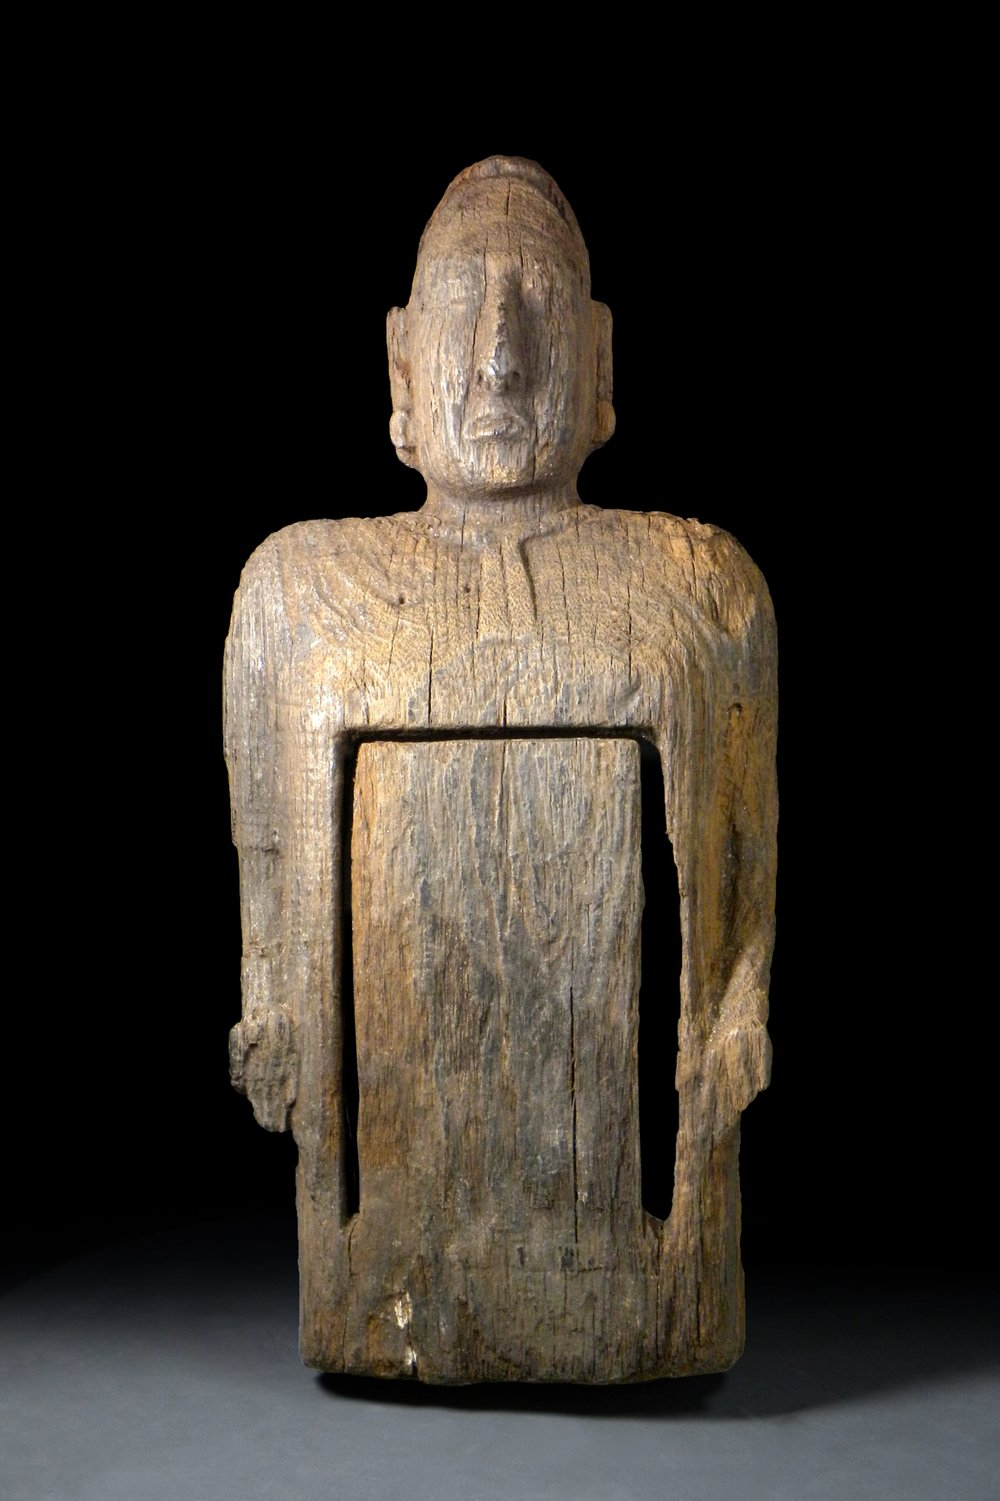 Wooden Prehispanic sculpture